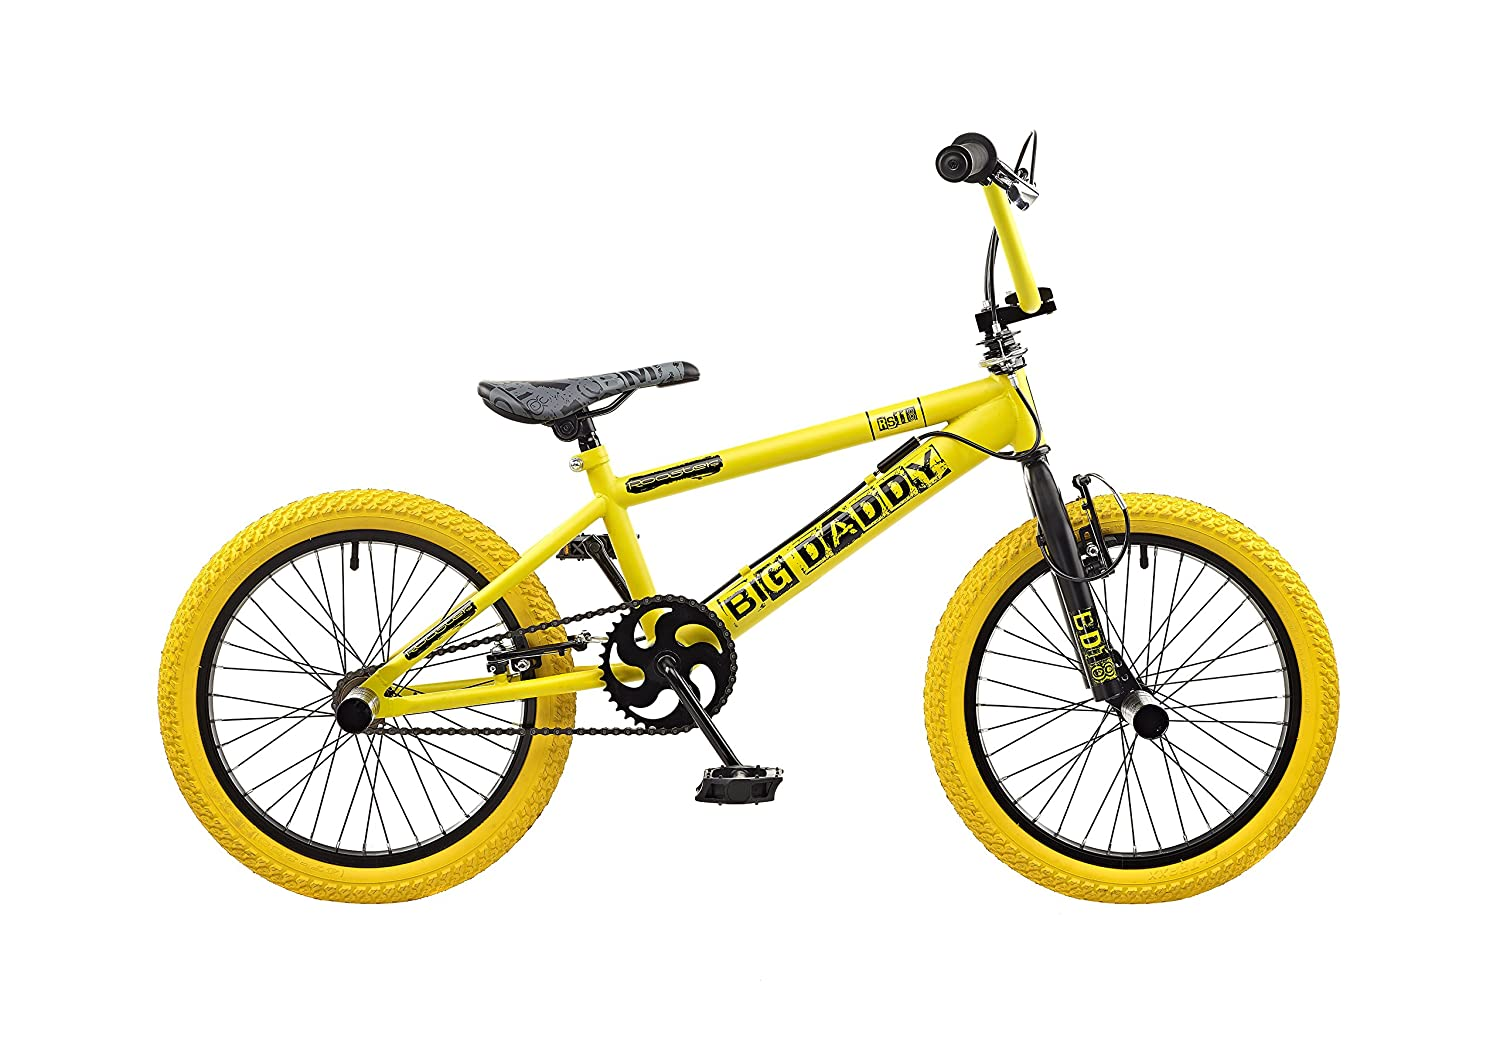 Rooster Children\'s Big Daddy Bmx Bike: Amazon.co.uk: Sports & Outdoors